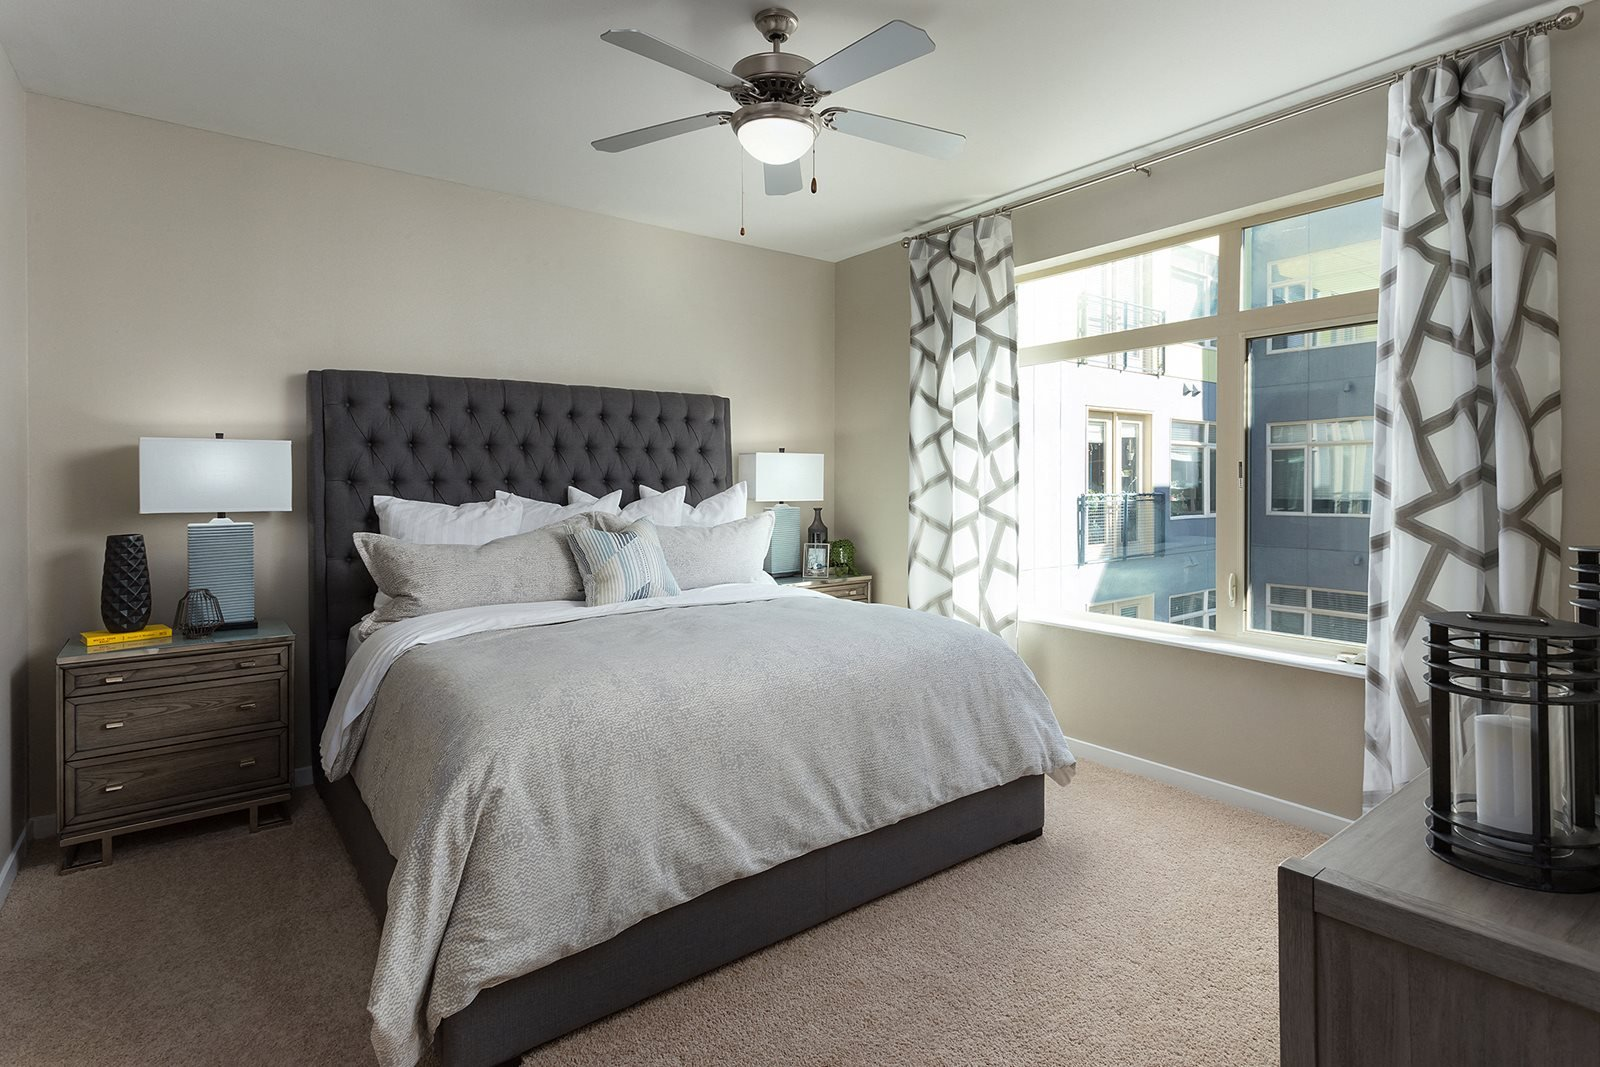 The District, Denver, CO,80222 has Live in cozy bedrooms